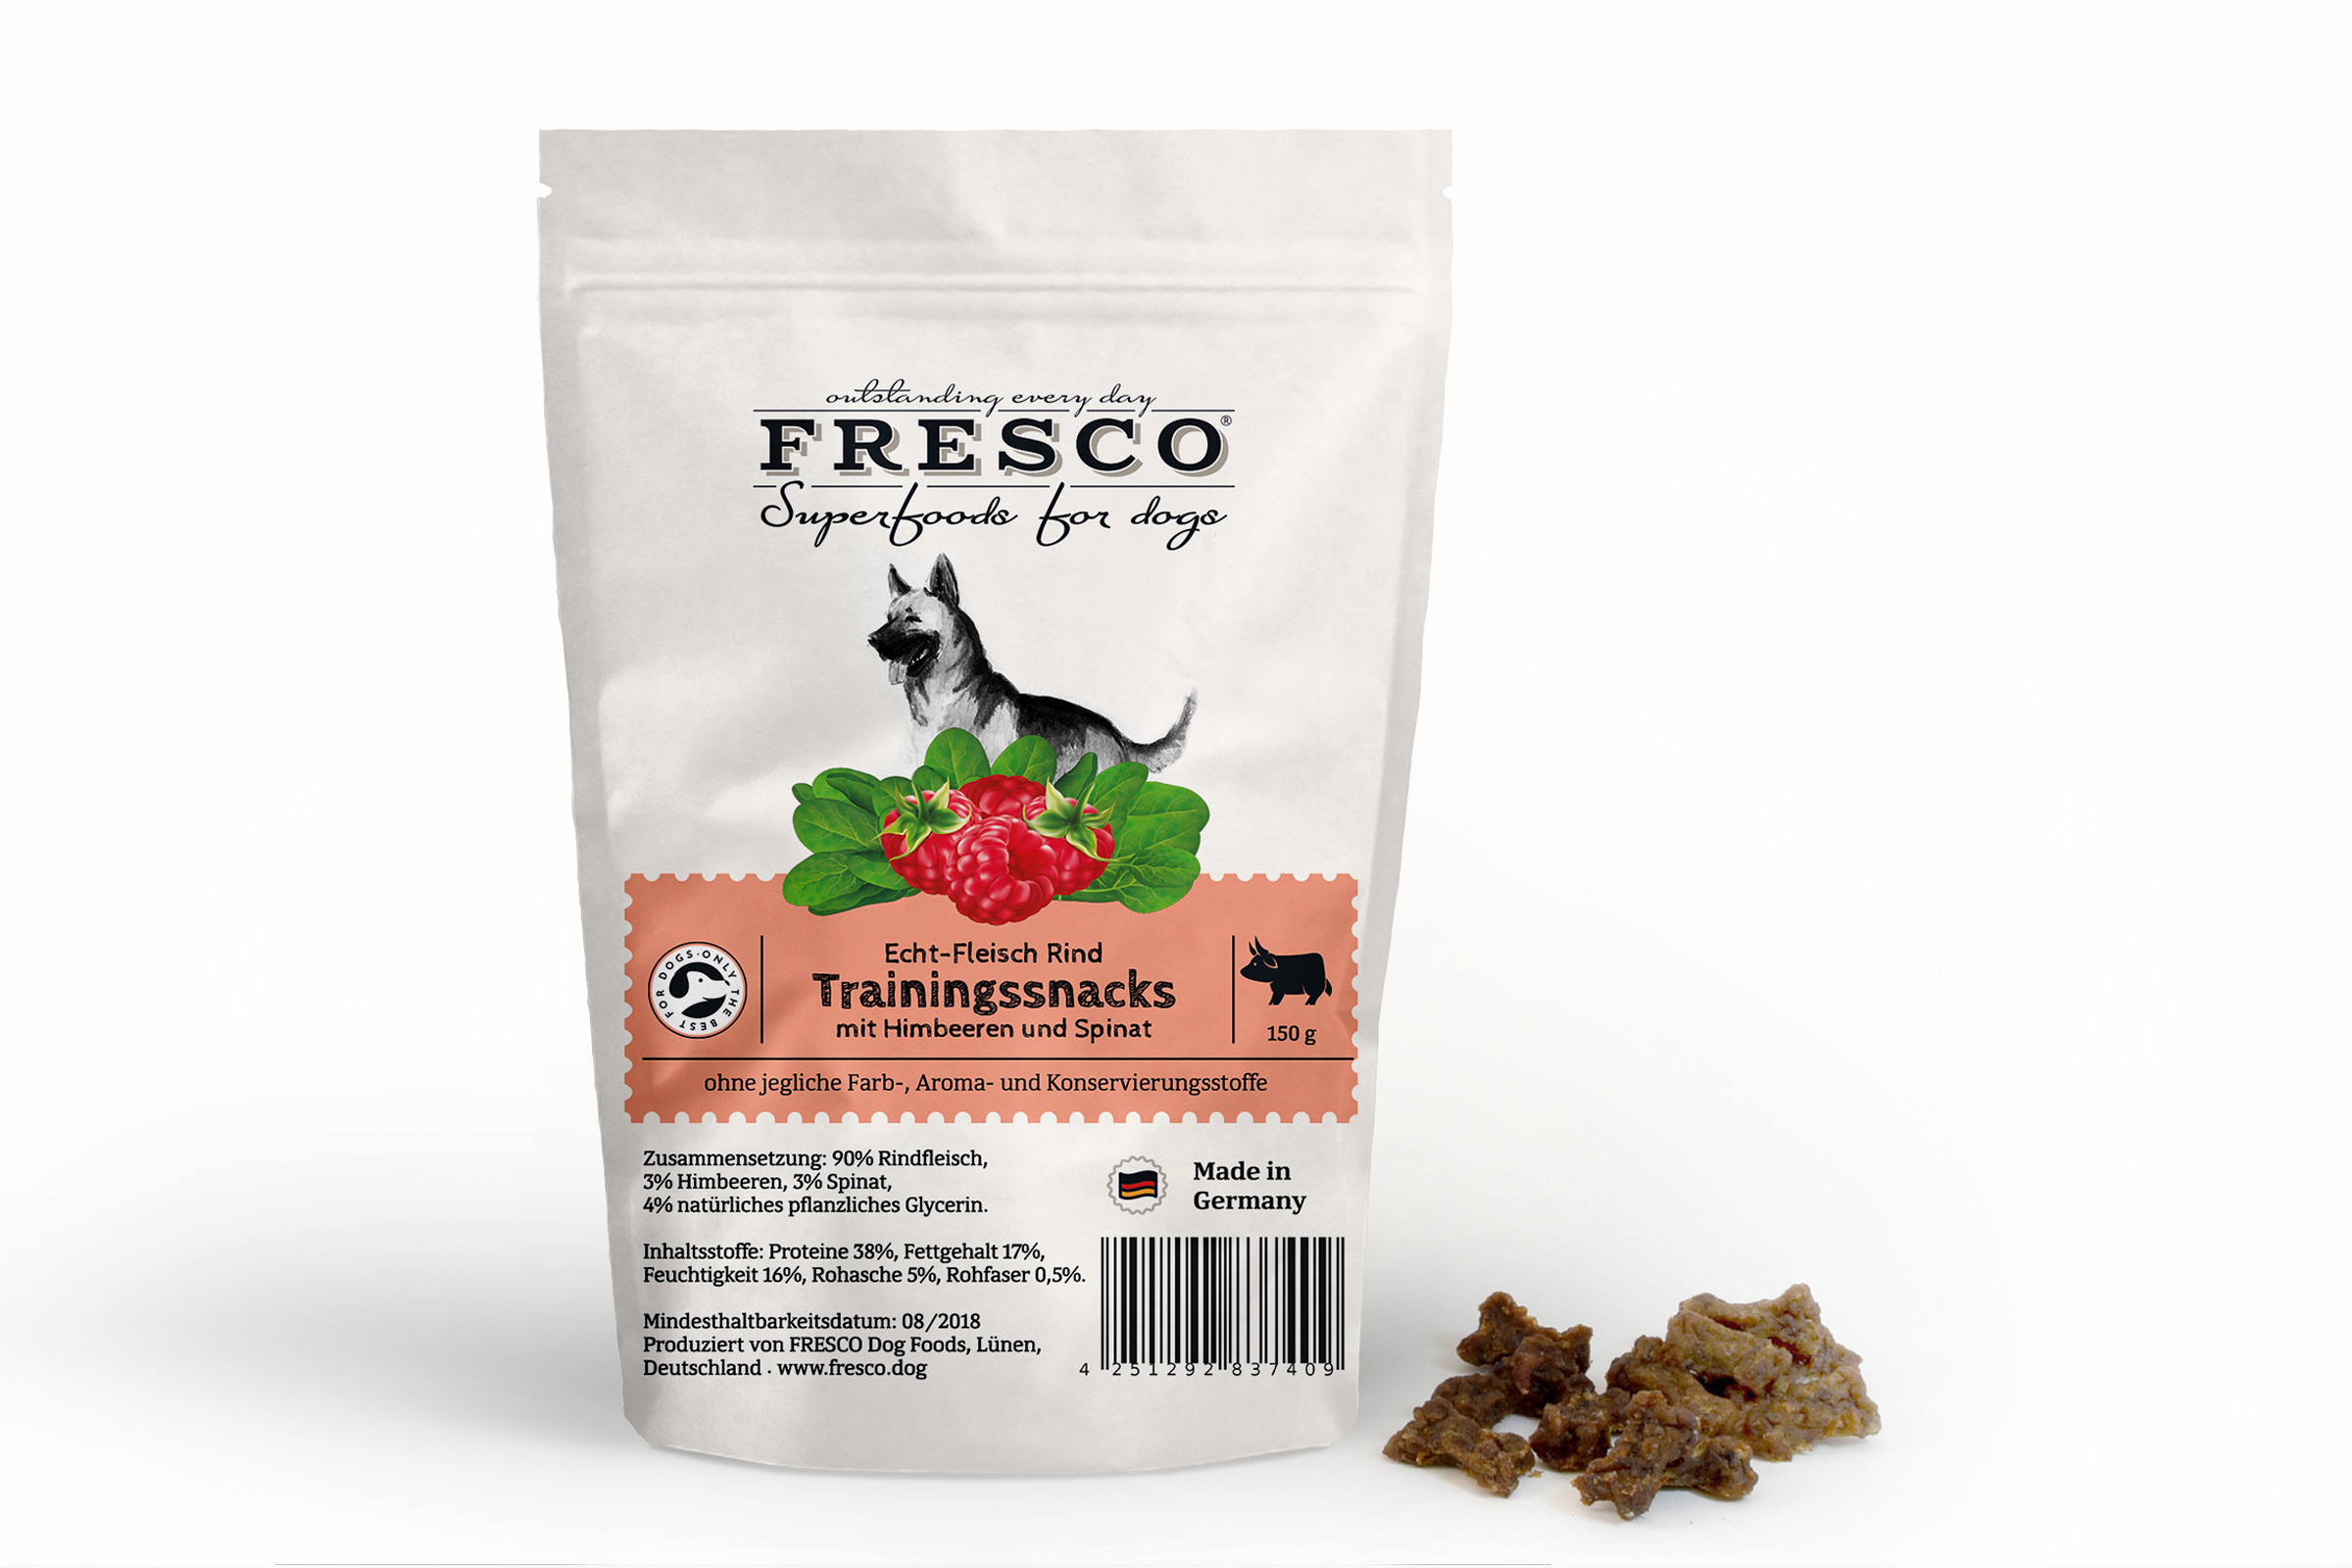 Fresco -Beef Training Snacks Mni Bones with rapsberry and spinach 150g